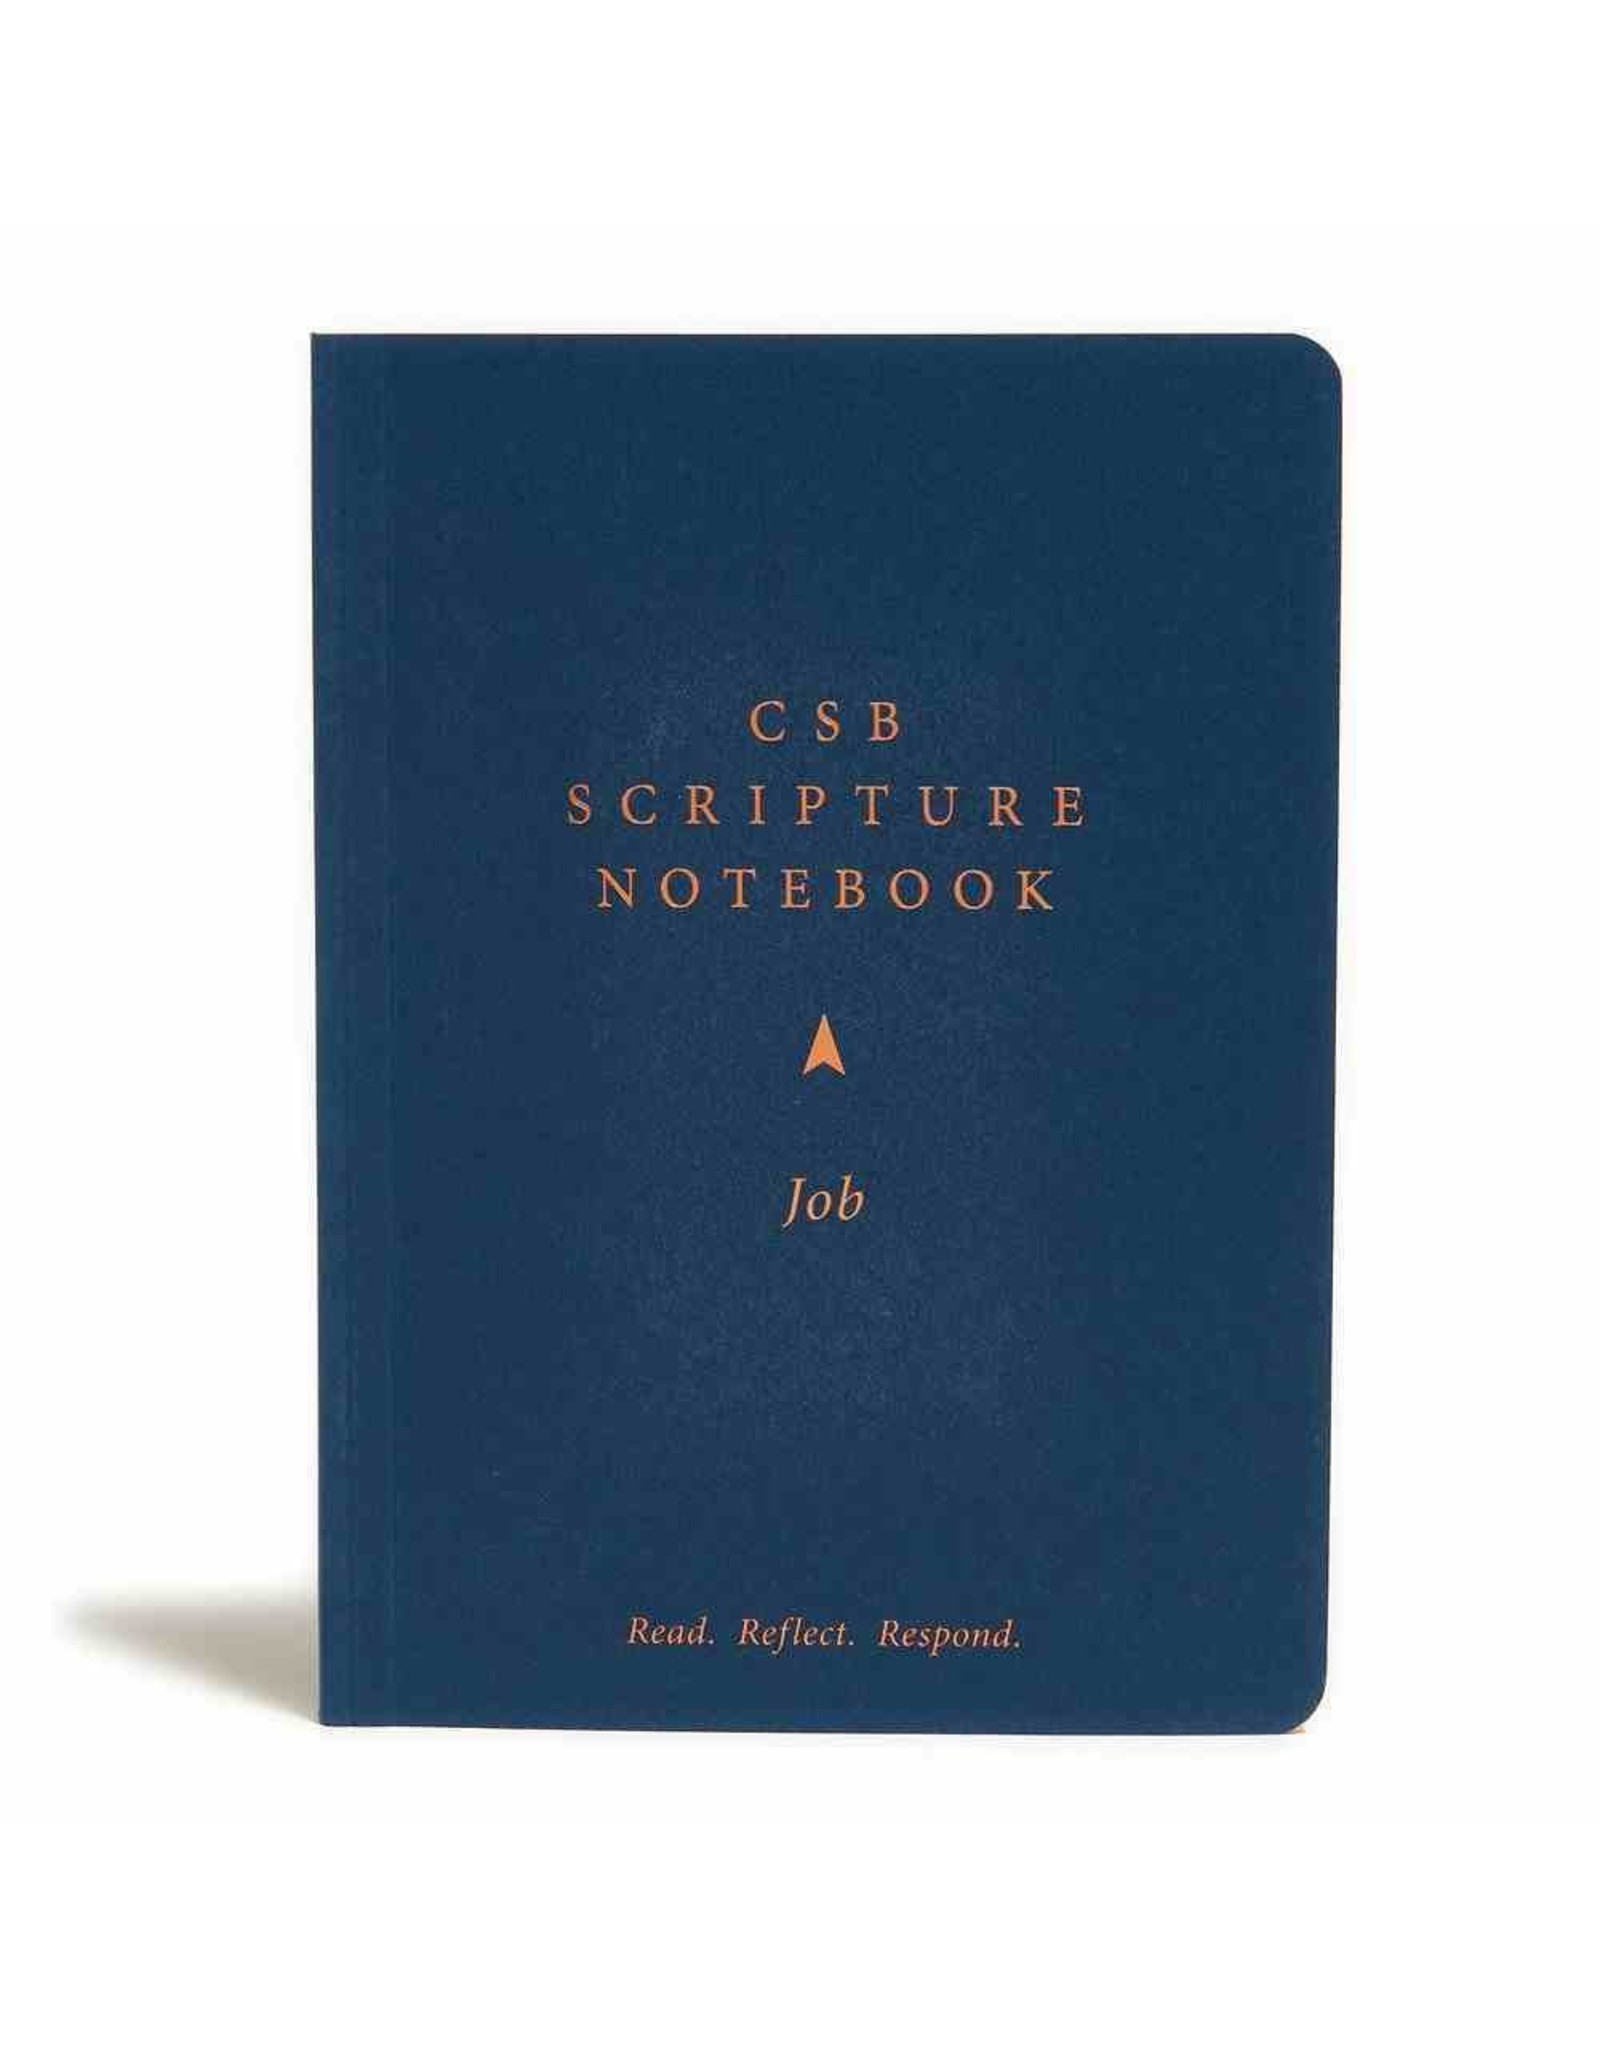 Holman CSB Scripture Notebook - Job